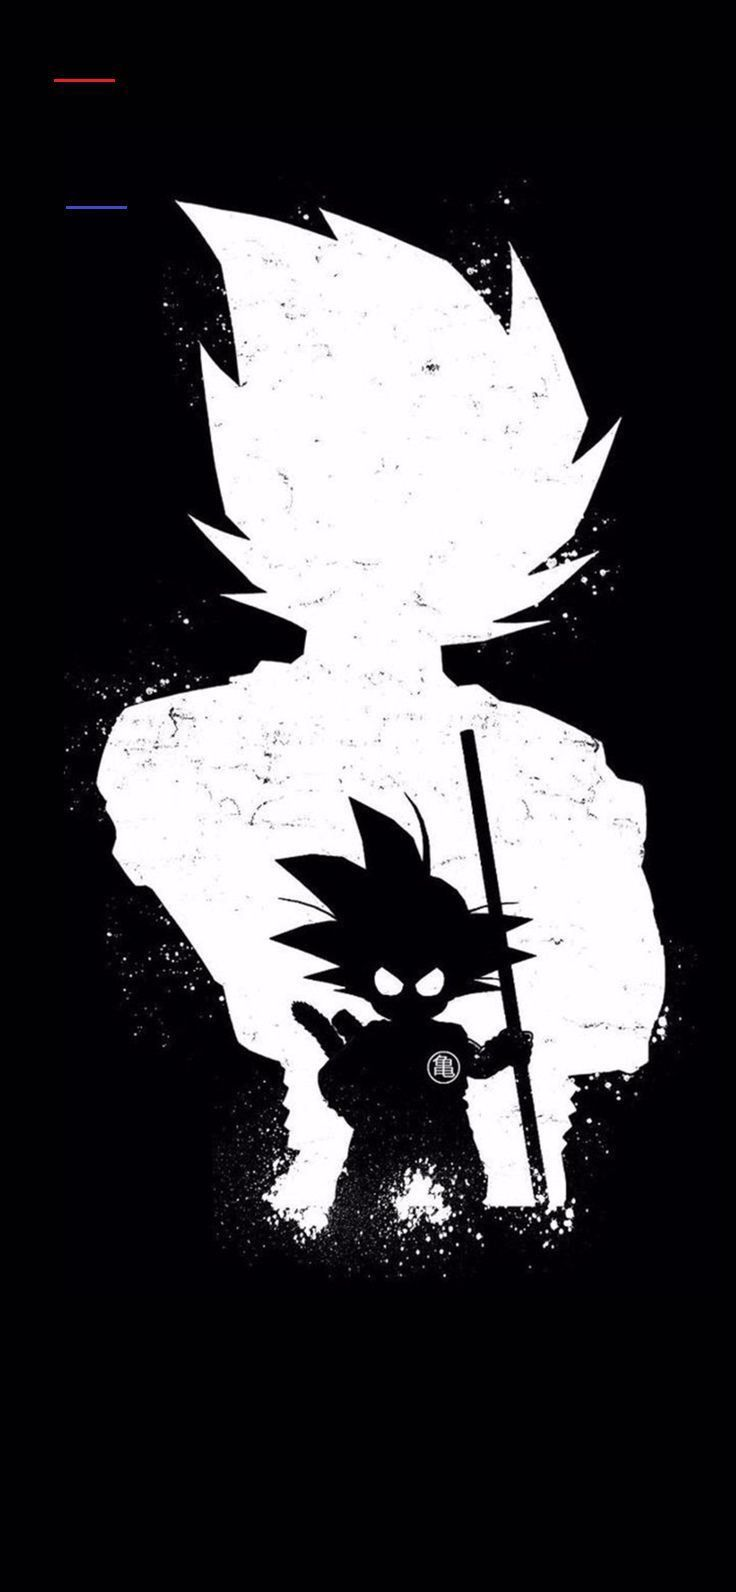 Naruto Wallpaper For Iphone Xs Max Iphone Xs Max Black Wallpaper